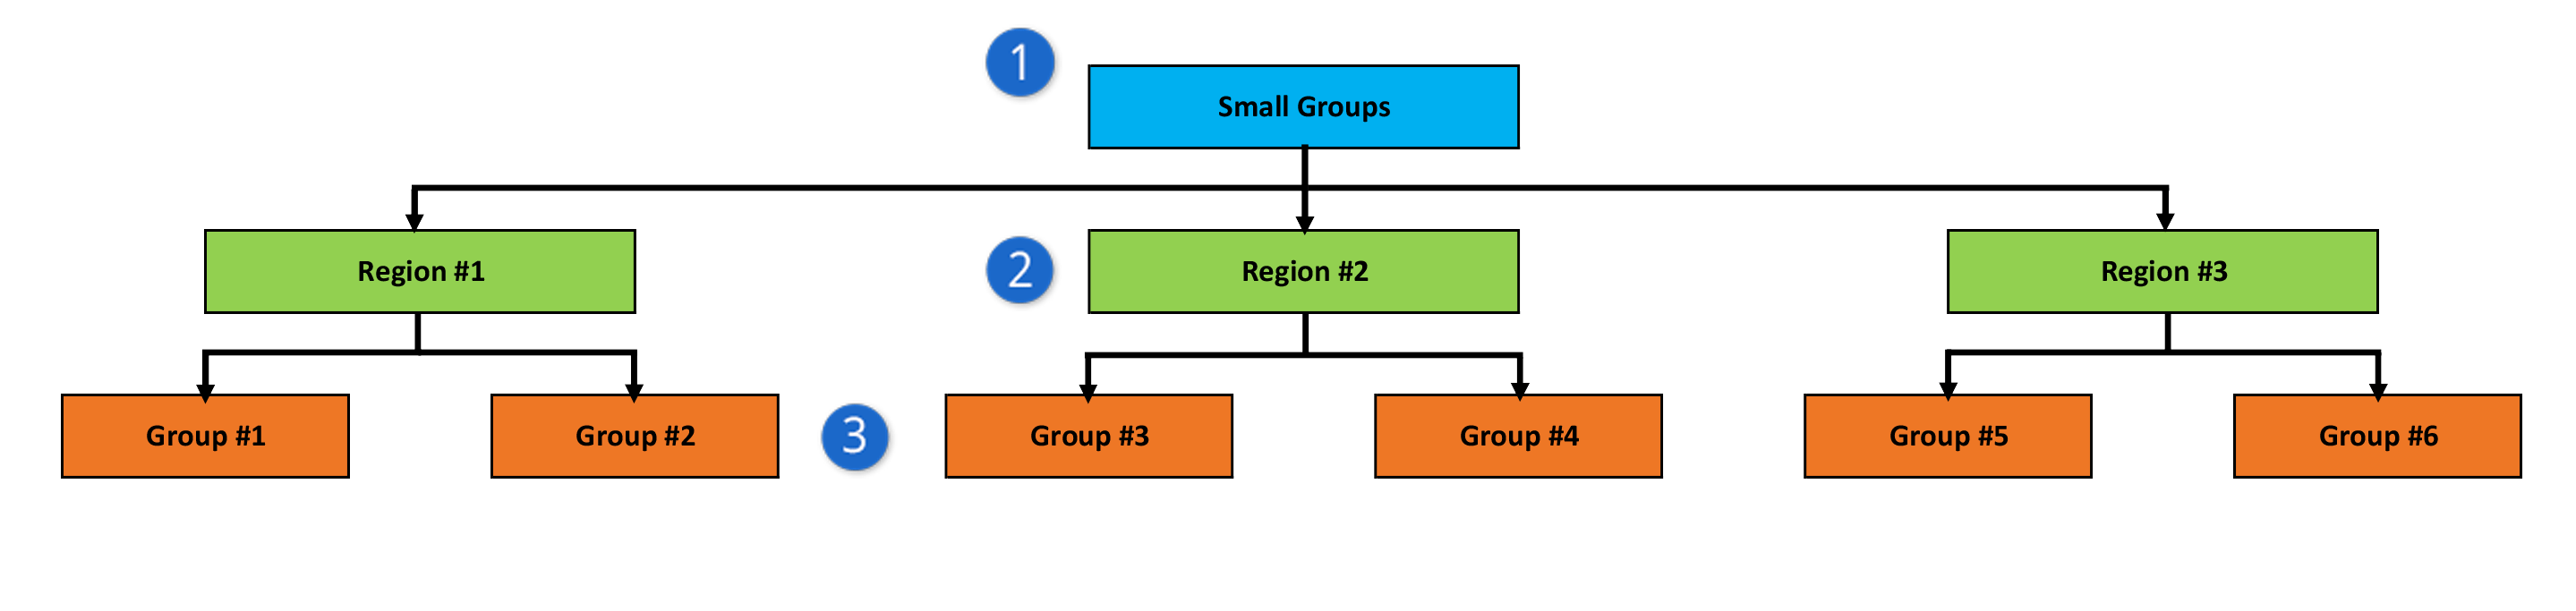 Group Structure for Attendance Digest